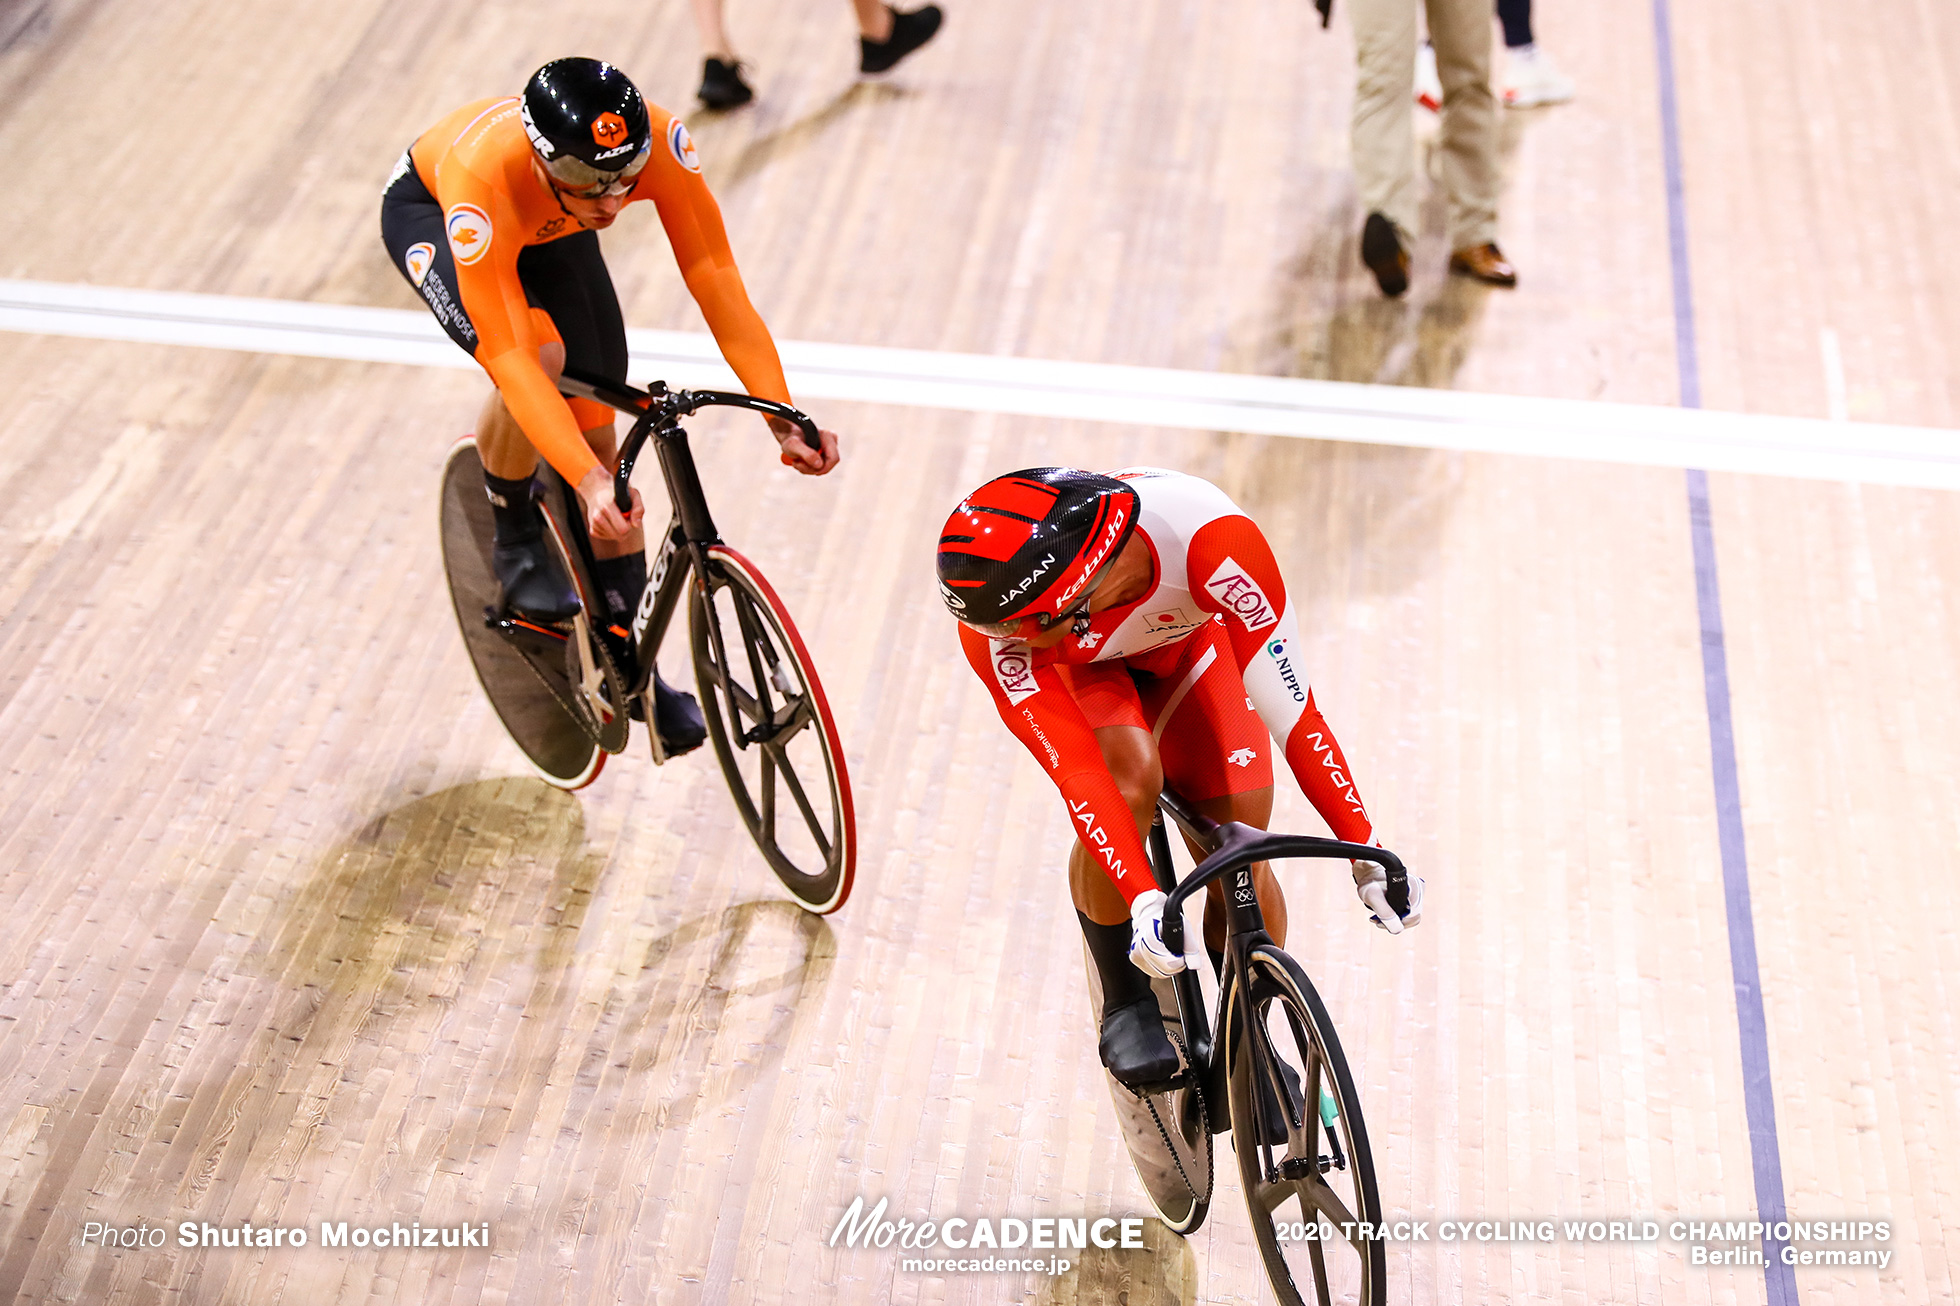 1/16 Finals / Men's Sprint / 2020 Track Cycling World Championships